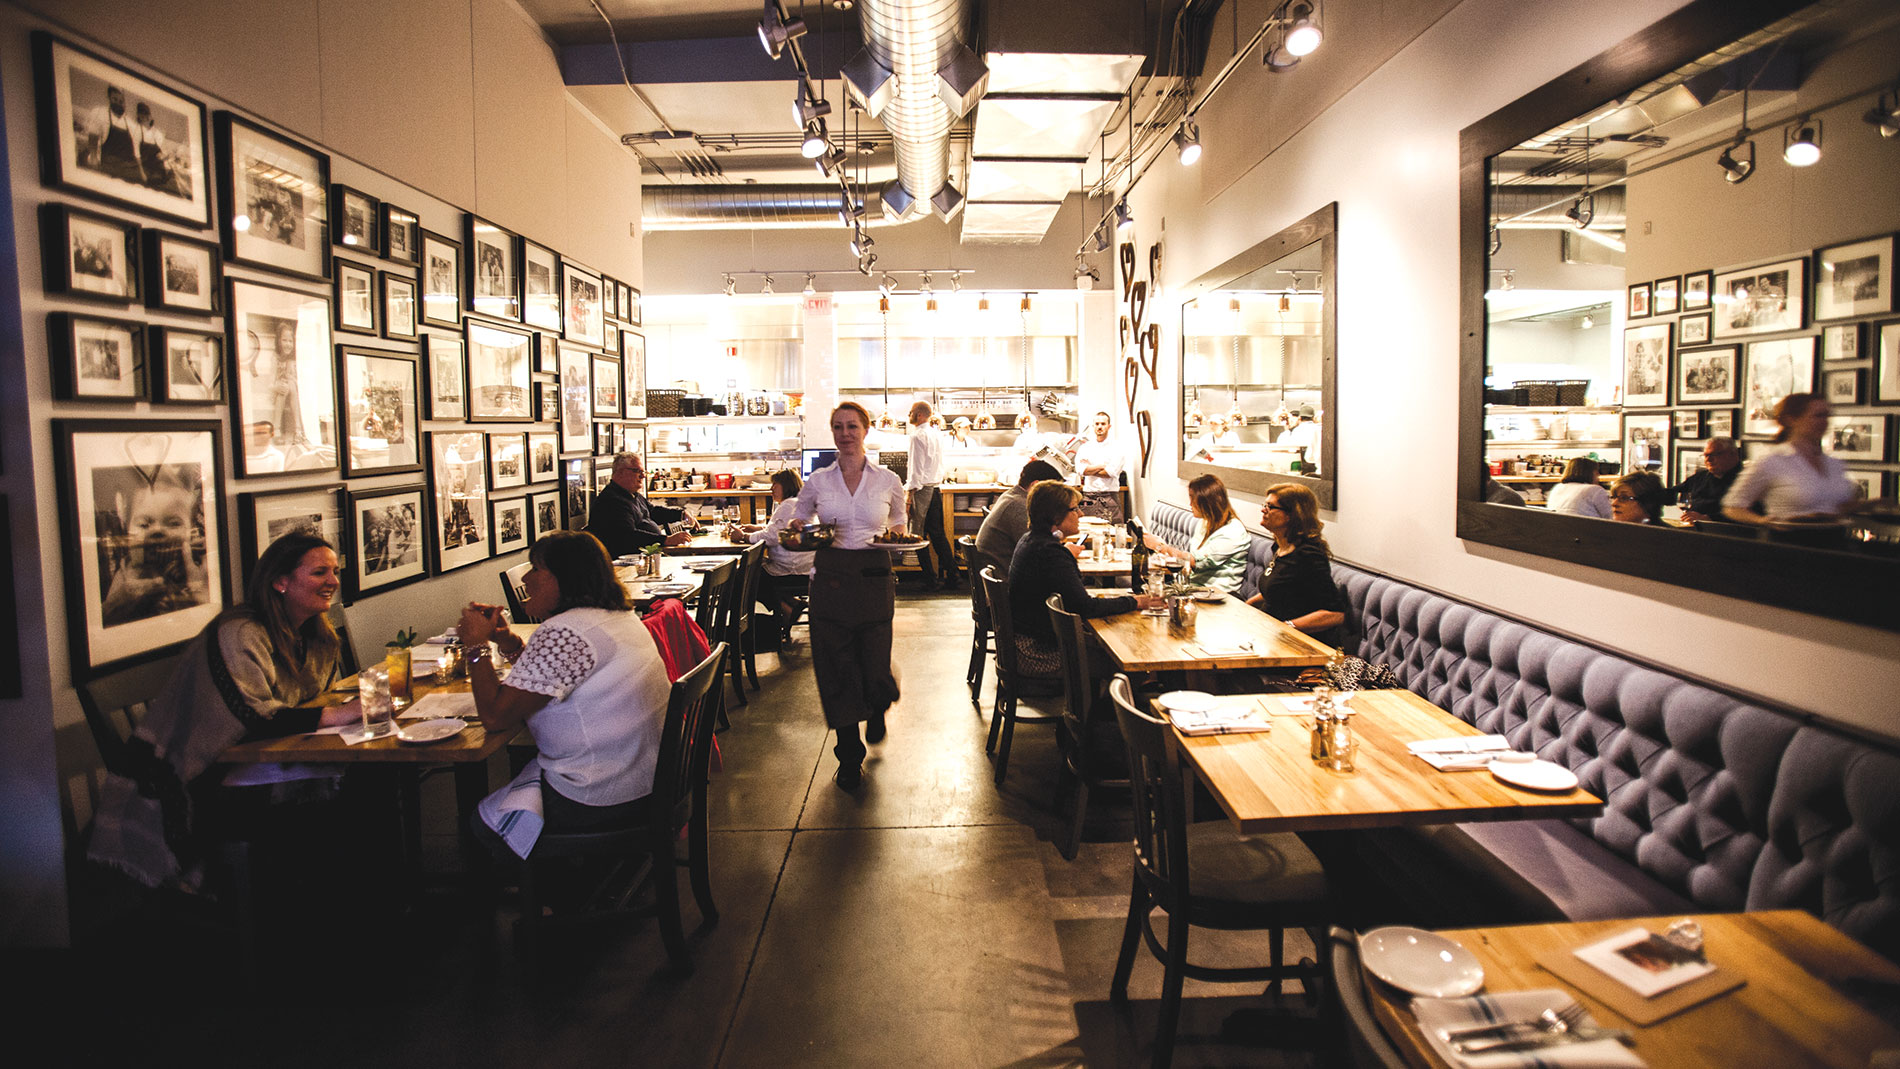 a busy restaurant dining room